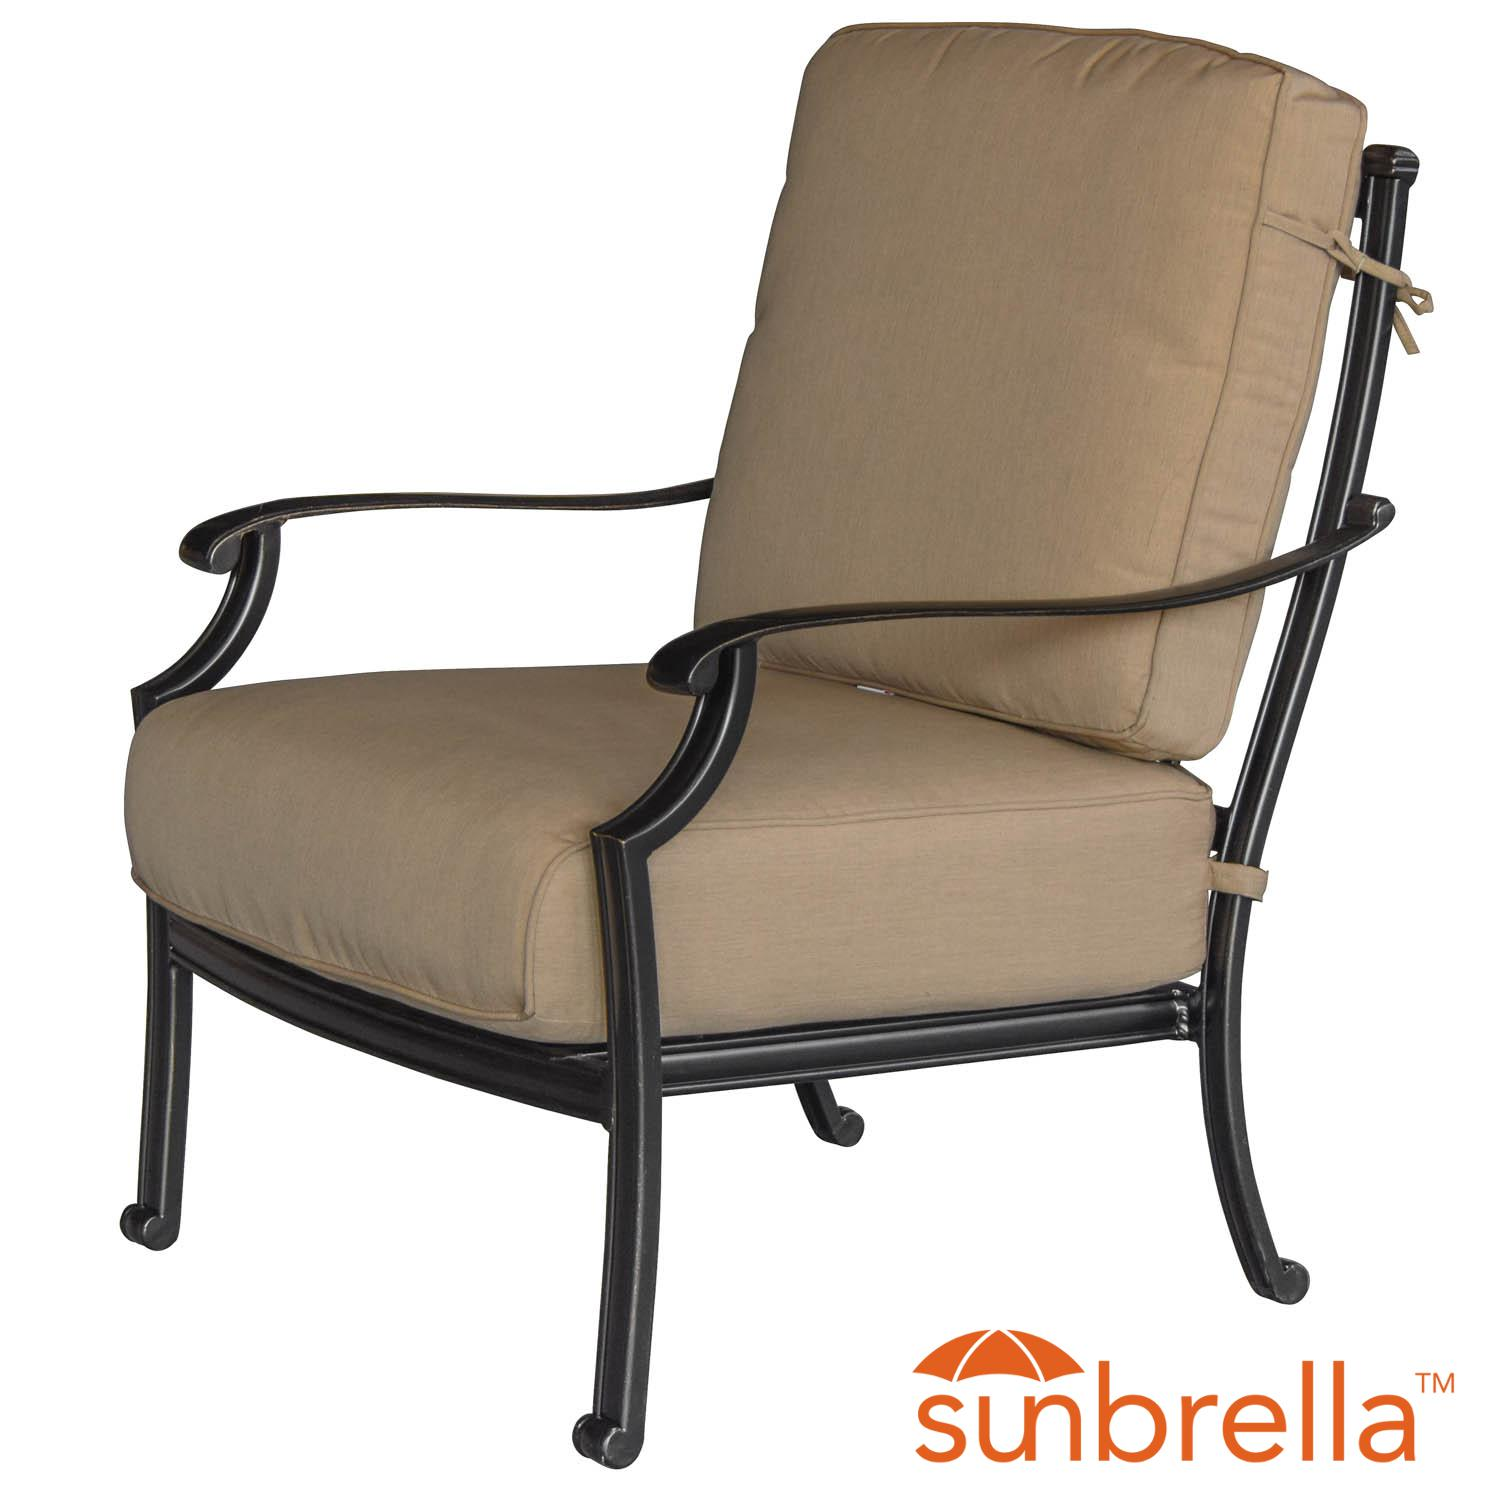 Bocage Cast Aluminum Patio Club Chair W/ Sunbrella Heathe...